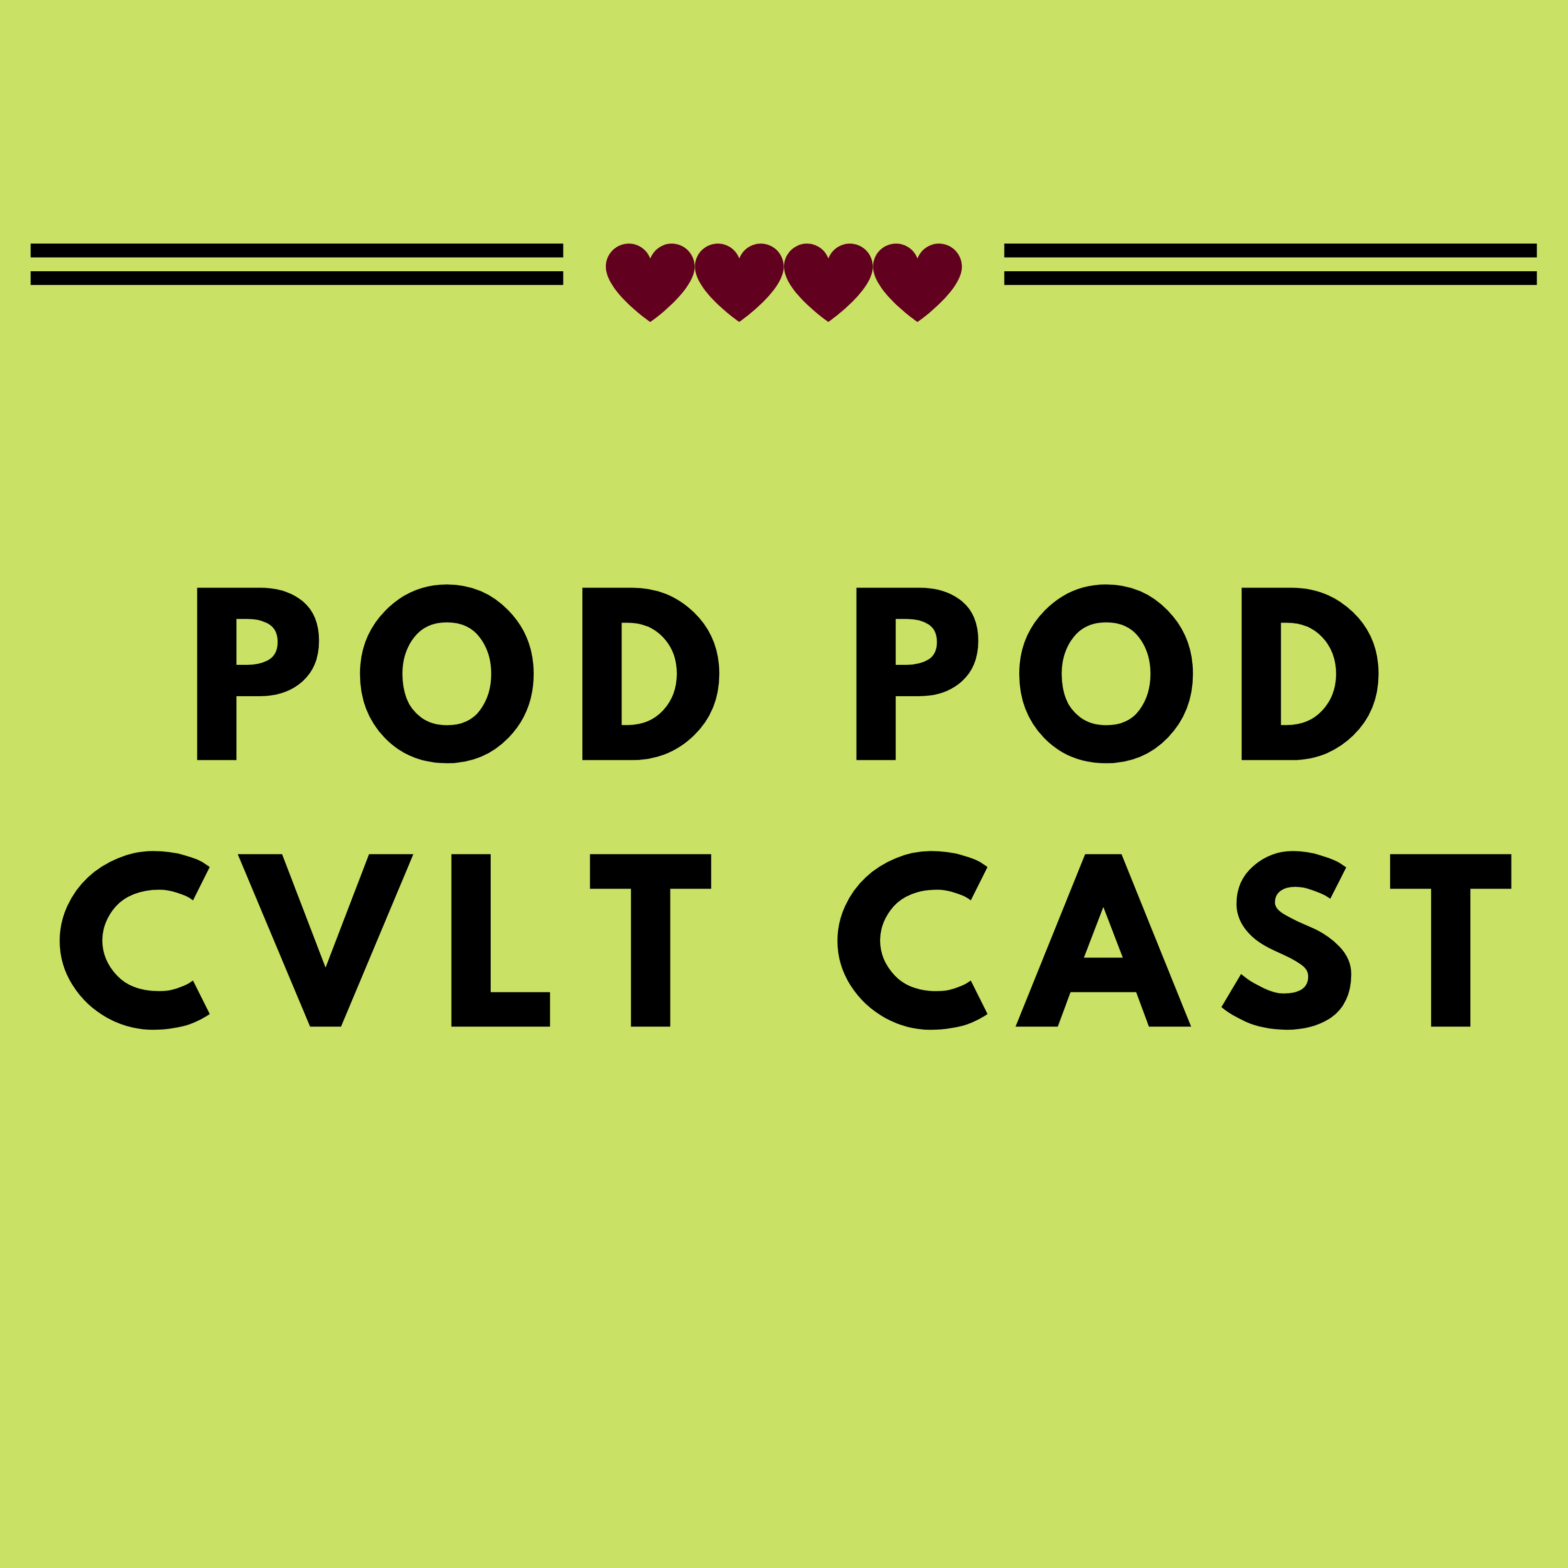 PodPodCvltCastCover podcast about polyamory/kink life, love, learning and libido